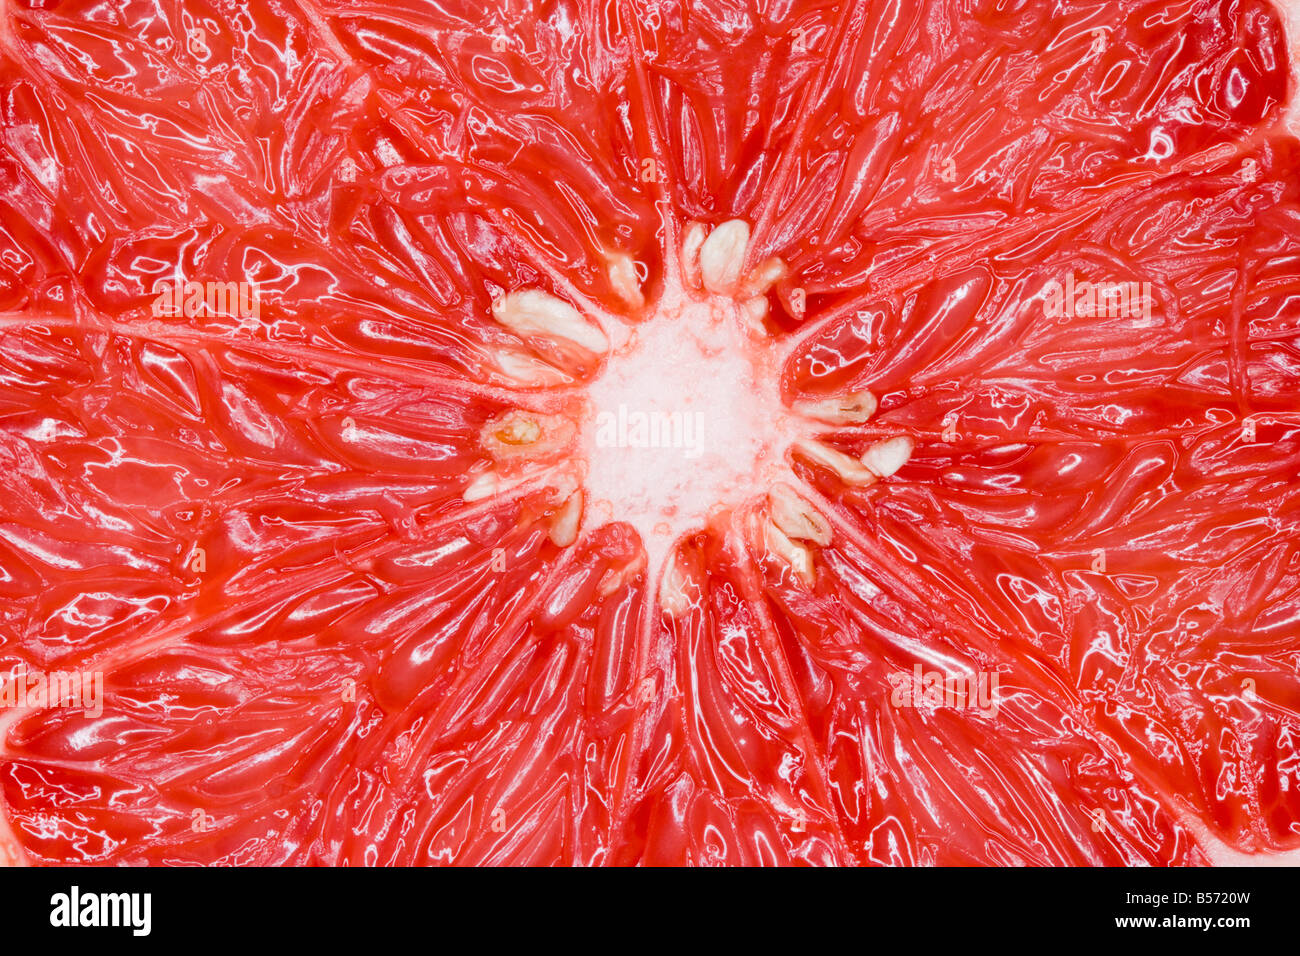 Ruby red grapefruit close up - Stock Image